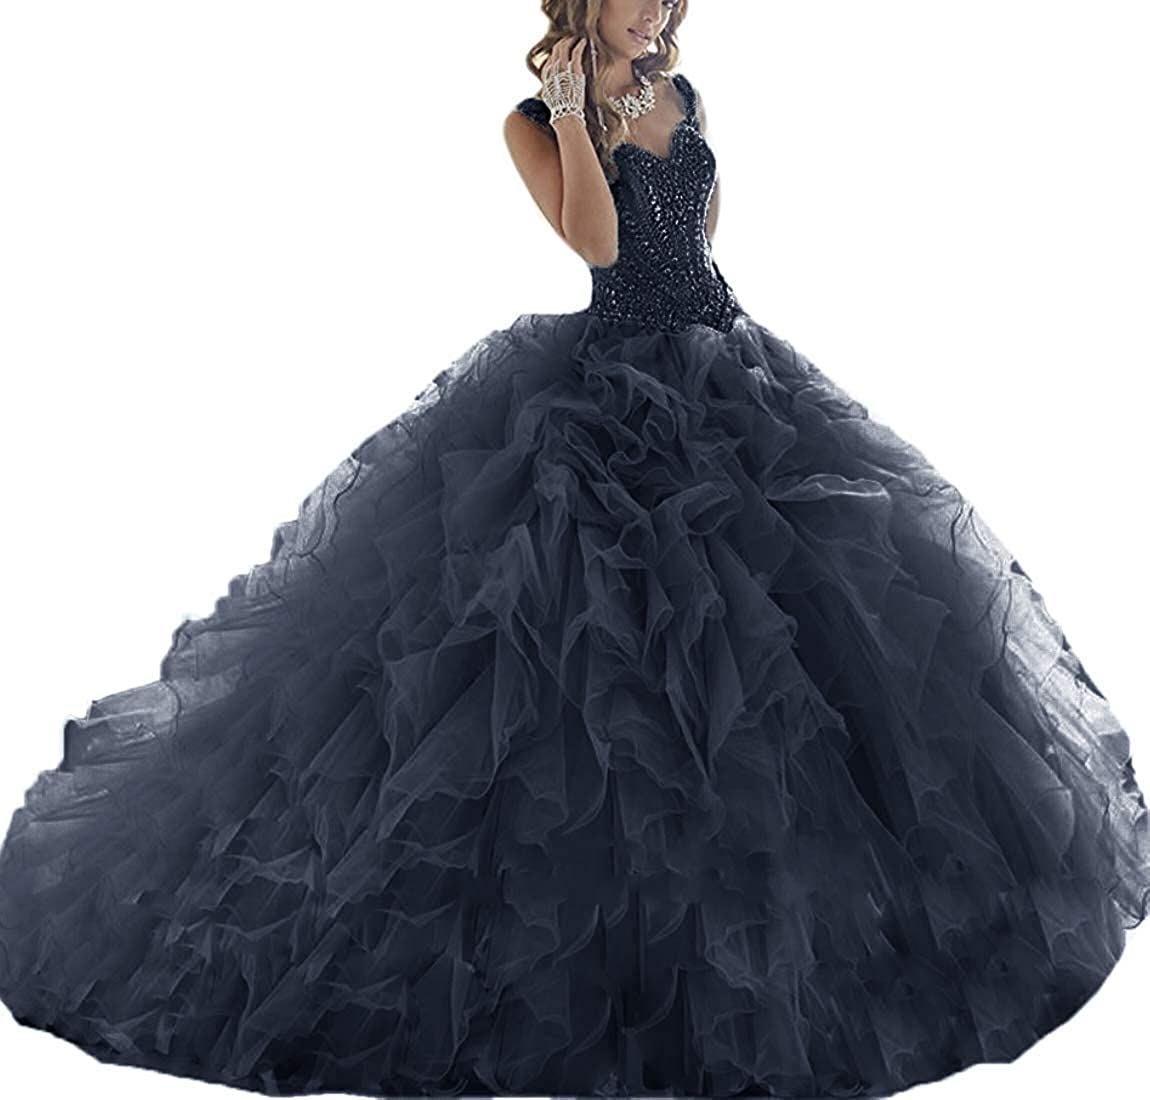 Navy bluee ASBridal Quinceanera Dresses Long Prom Party Dress Sweet 16 Crystals Beads Formal Ball Gowns Orangza